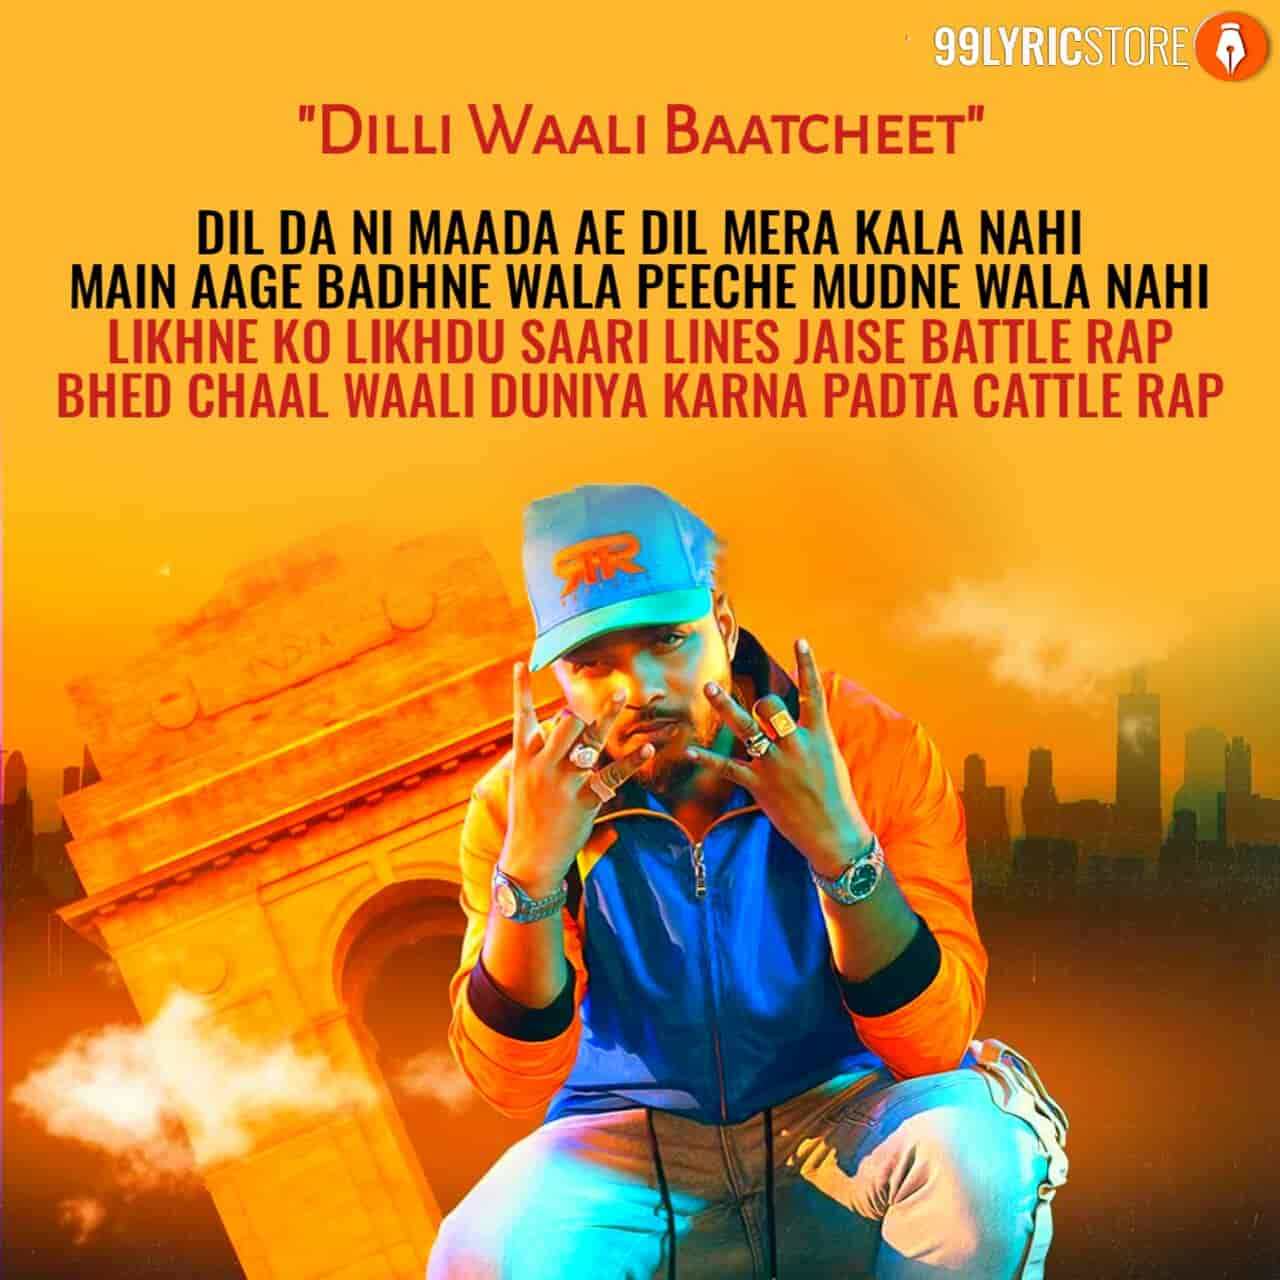 Dilli Waali Baatcheet Hip hop Rap Song Sung by Raftaar